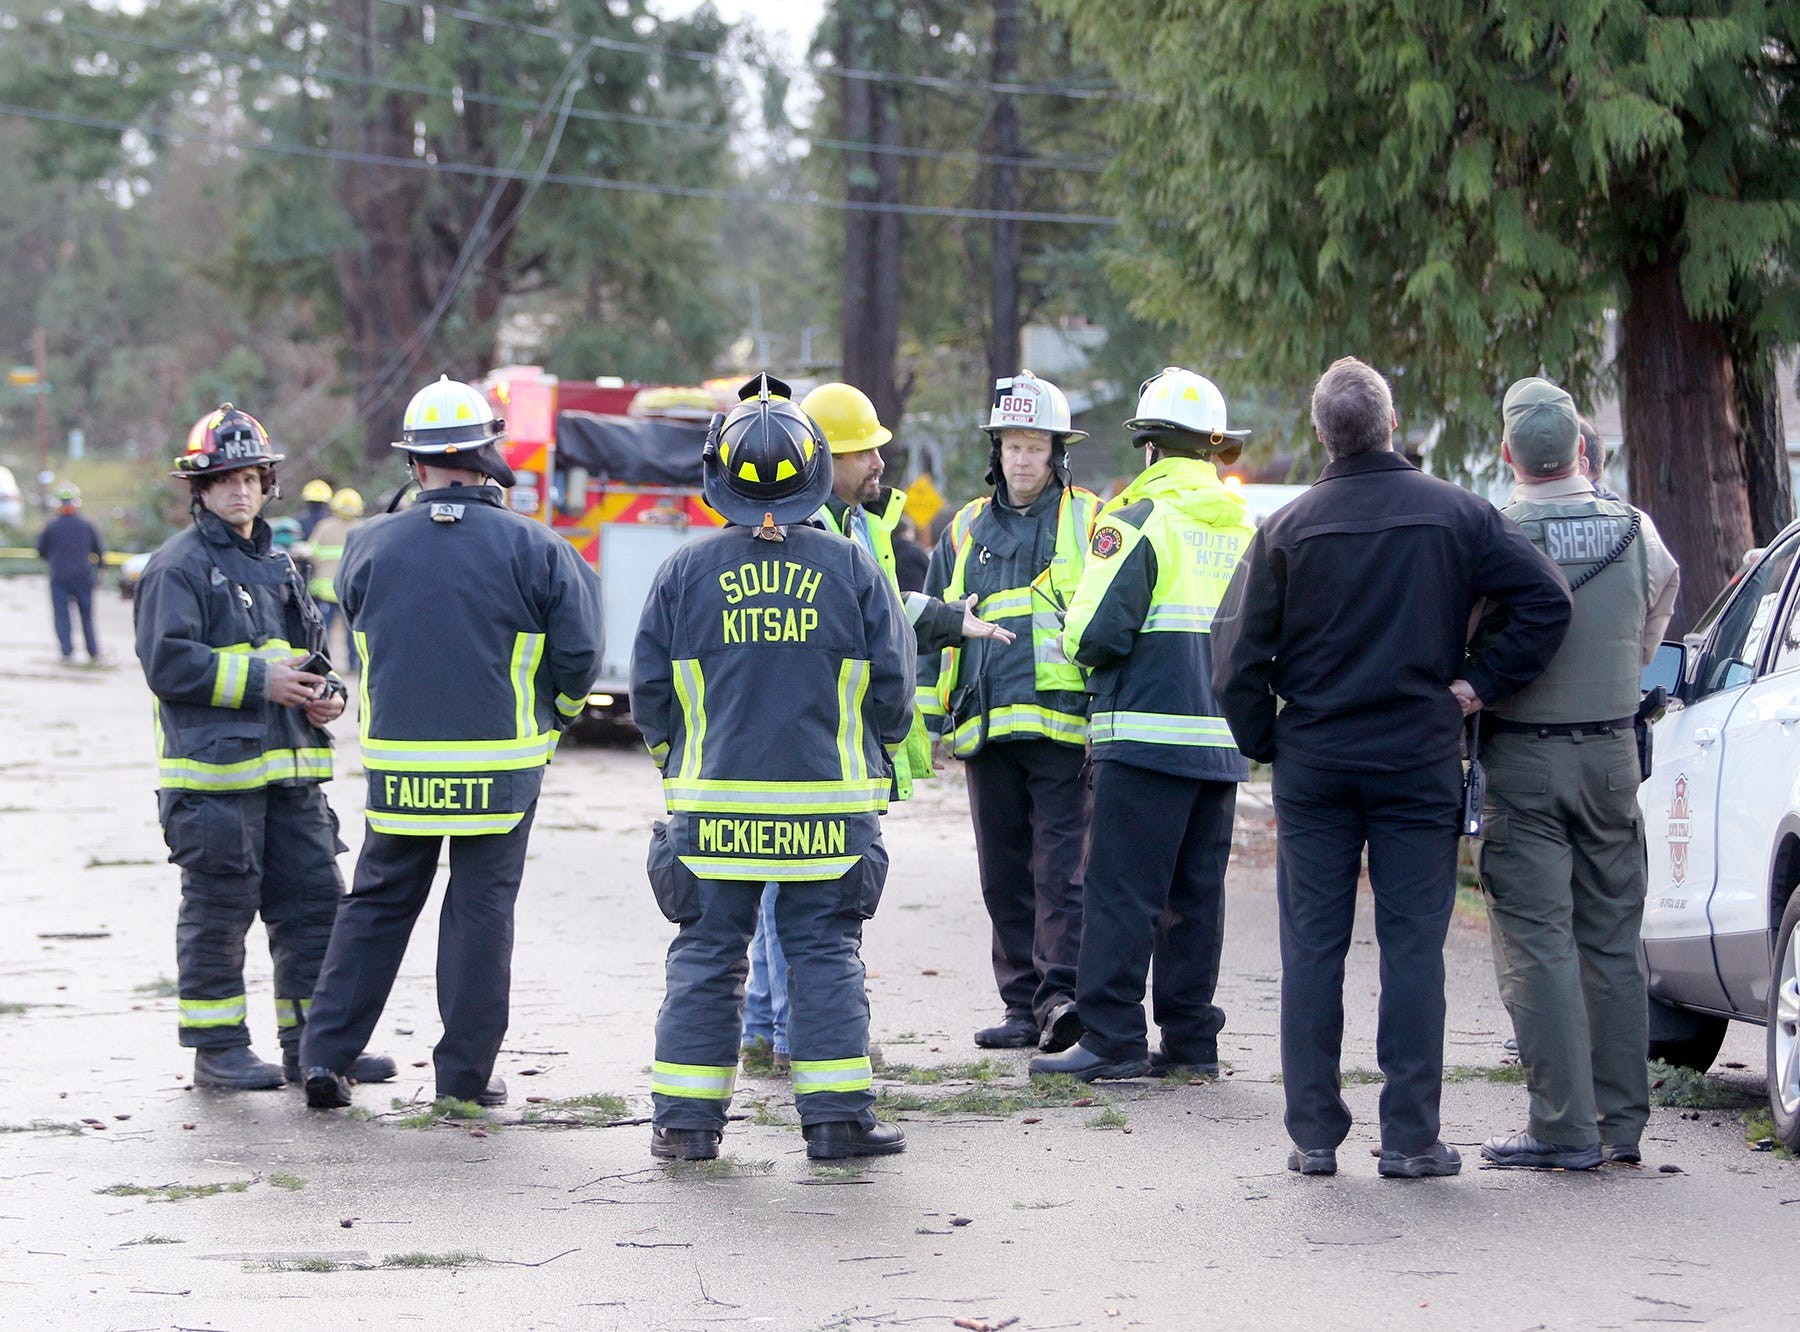 Emergency responders meet at the Harris Rd SE neighborhood after a tornado came through Port Orchard on the afternoon of Tuesday, December 18, 2018. The path was over Bethel near Walmart, and Safeway. He filmed the tornado from the Safeway.